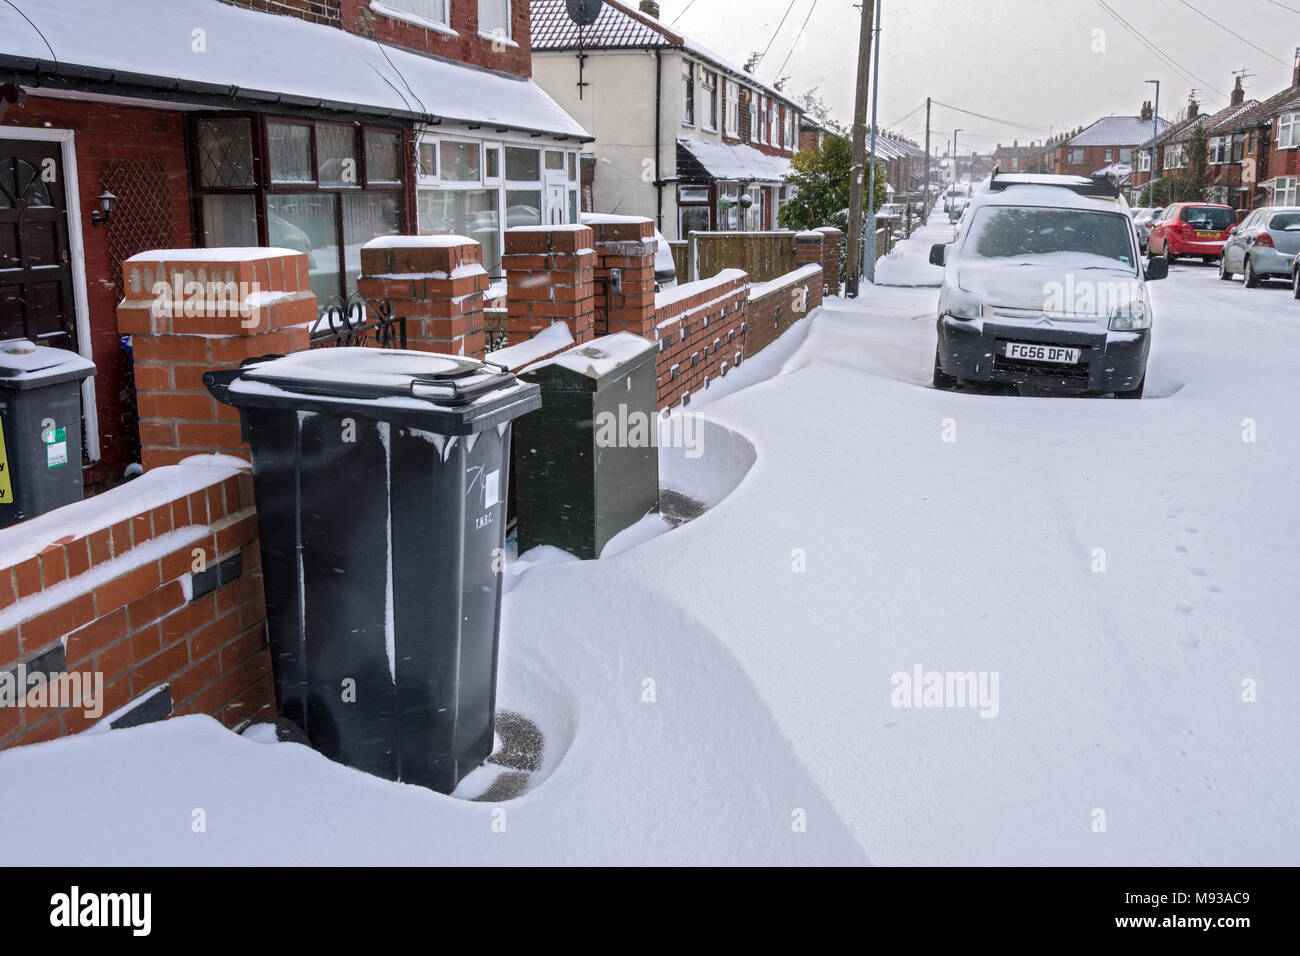 Wheelie bins and small snow drifts in a suburban street, Tameside, Manchester, England, UK - Stock Image